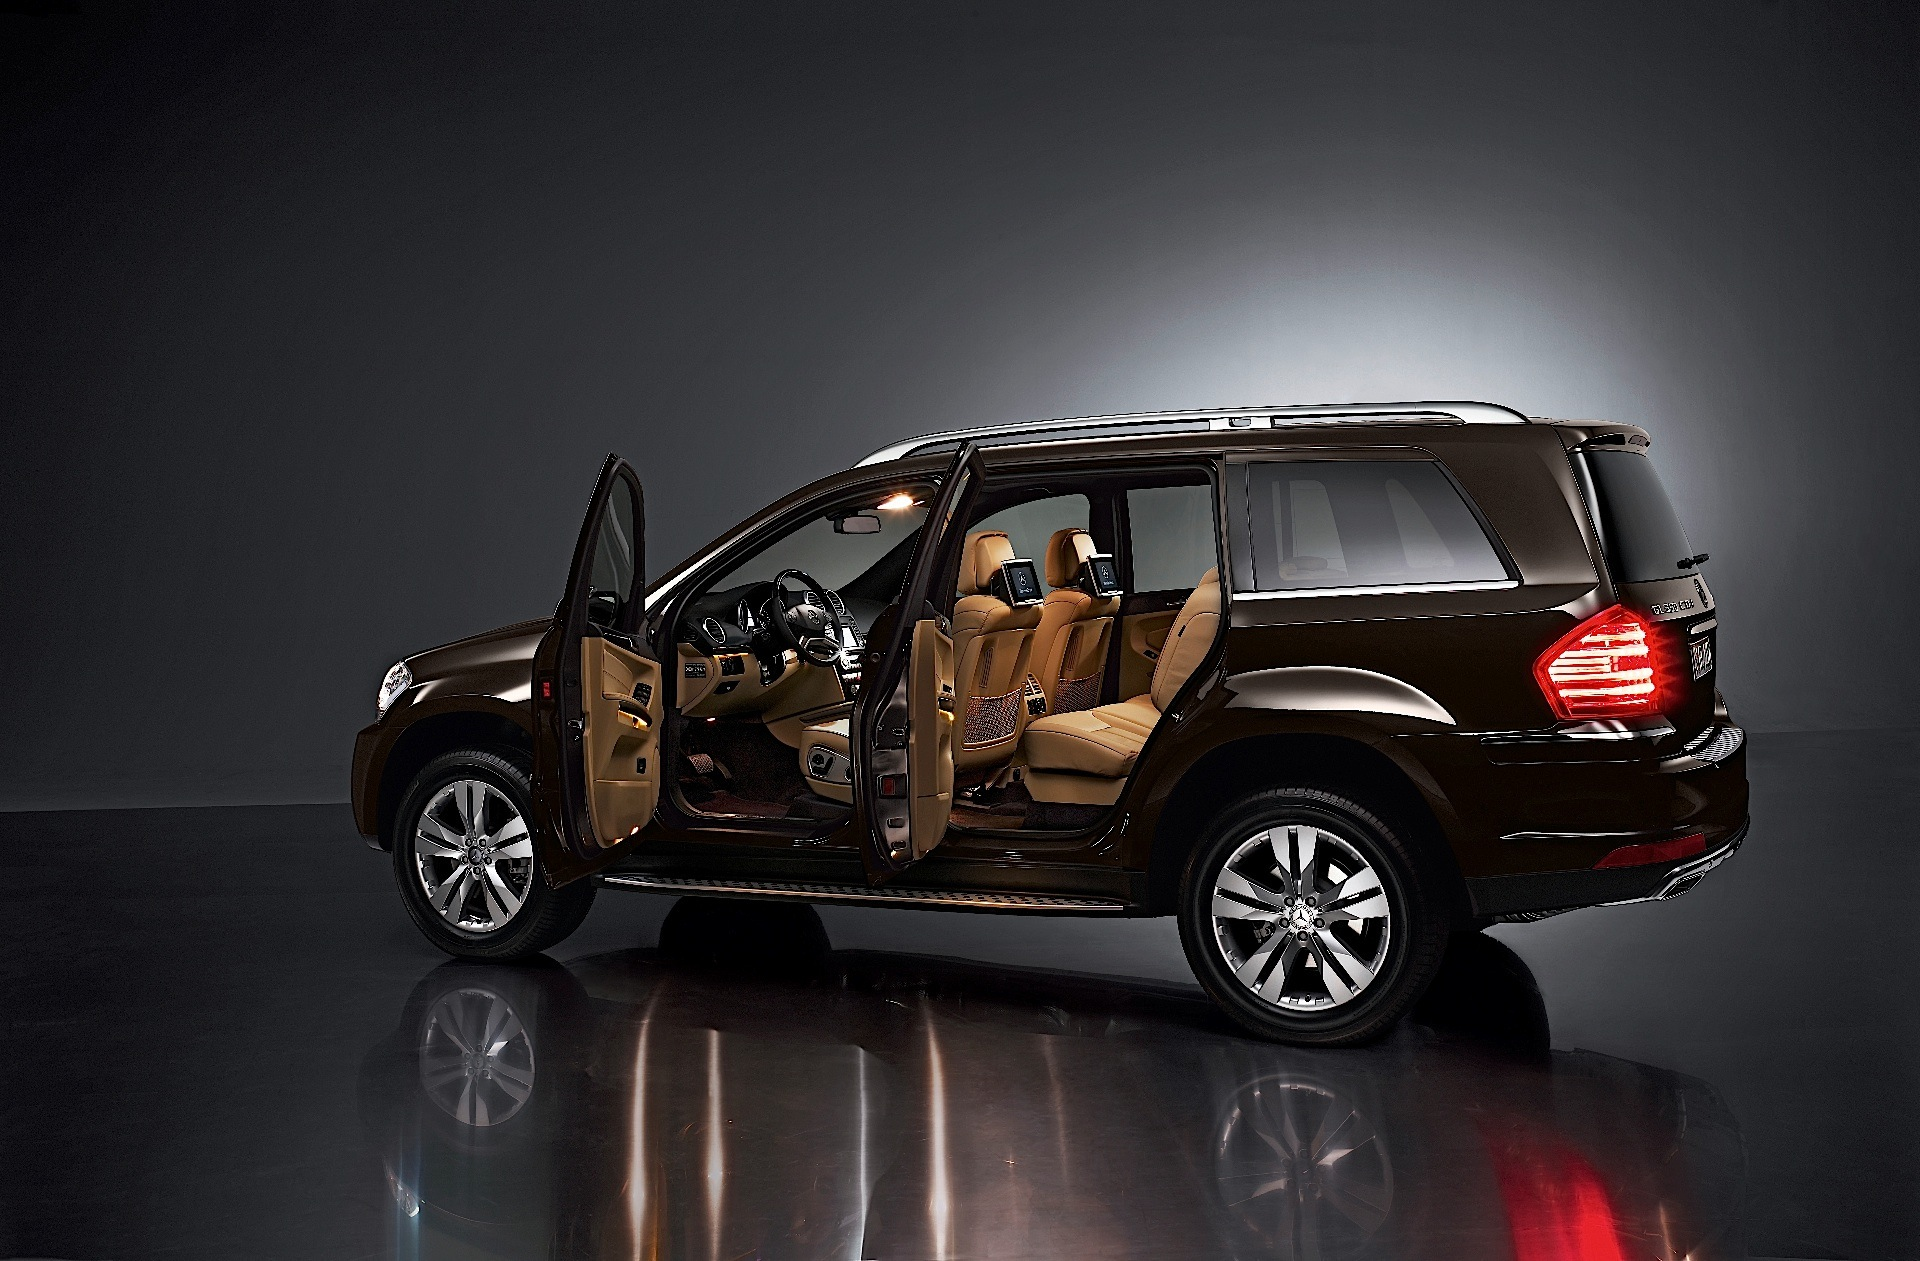 mercedes benz gl klasse x164 specs 2009 2010 2011 2012 autoevolution. Black Bedroom Furniture Sets. Home Design Ideas